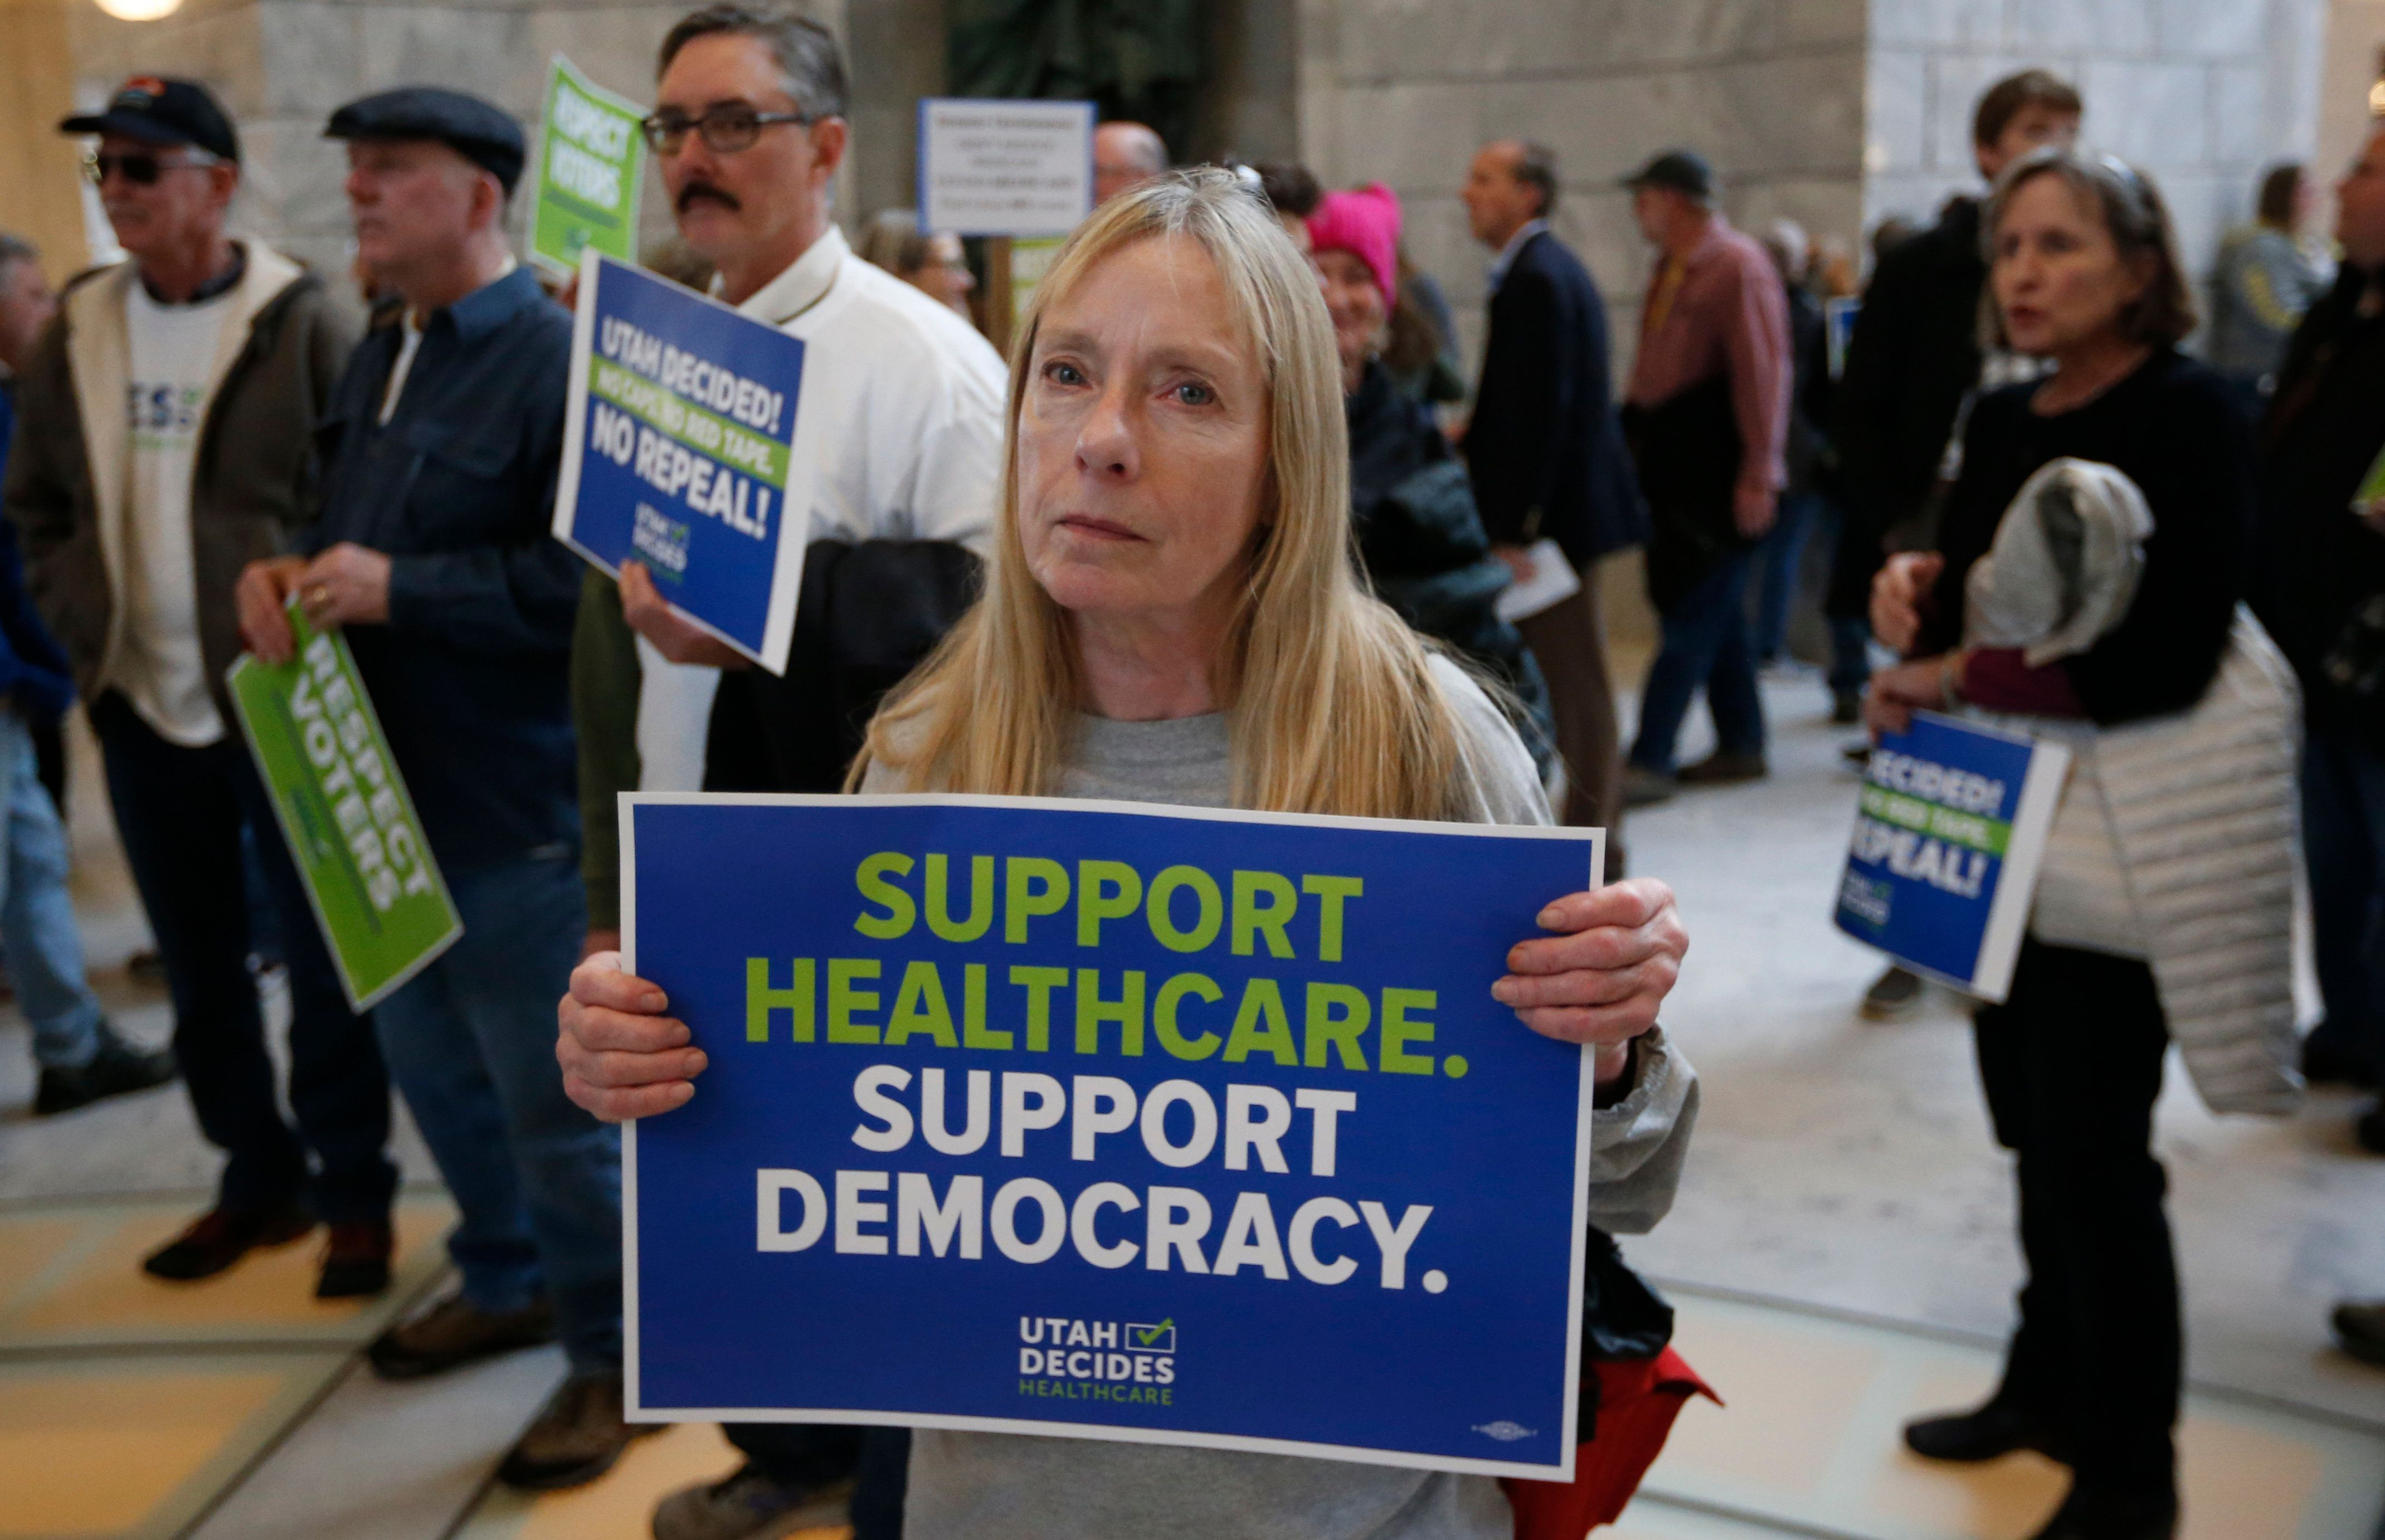 Bonnie Bowman, a supporter of a voter-approved measure to fully expand Medicaid gather others at a rally to ask lawmakers not to change the law during the first day of the Utah Legislature, at the Utah State Capitol, Monday, Jan. 28, 2019, in Salt Lake City. (AP Photo/Rick Bowmer)